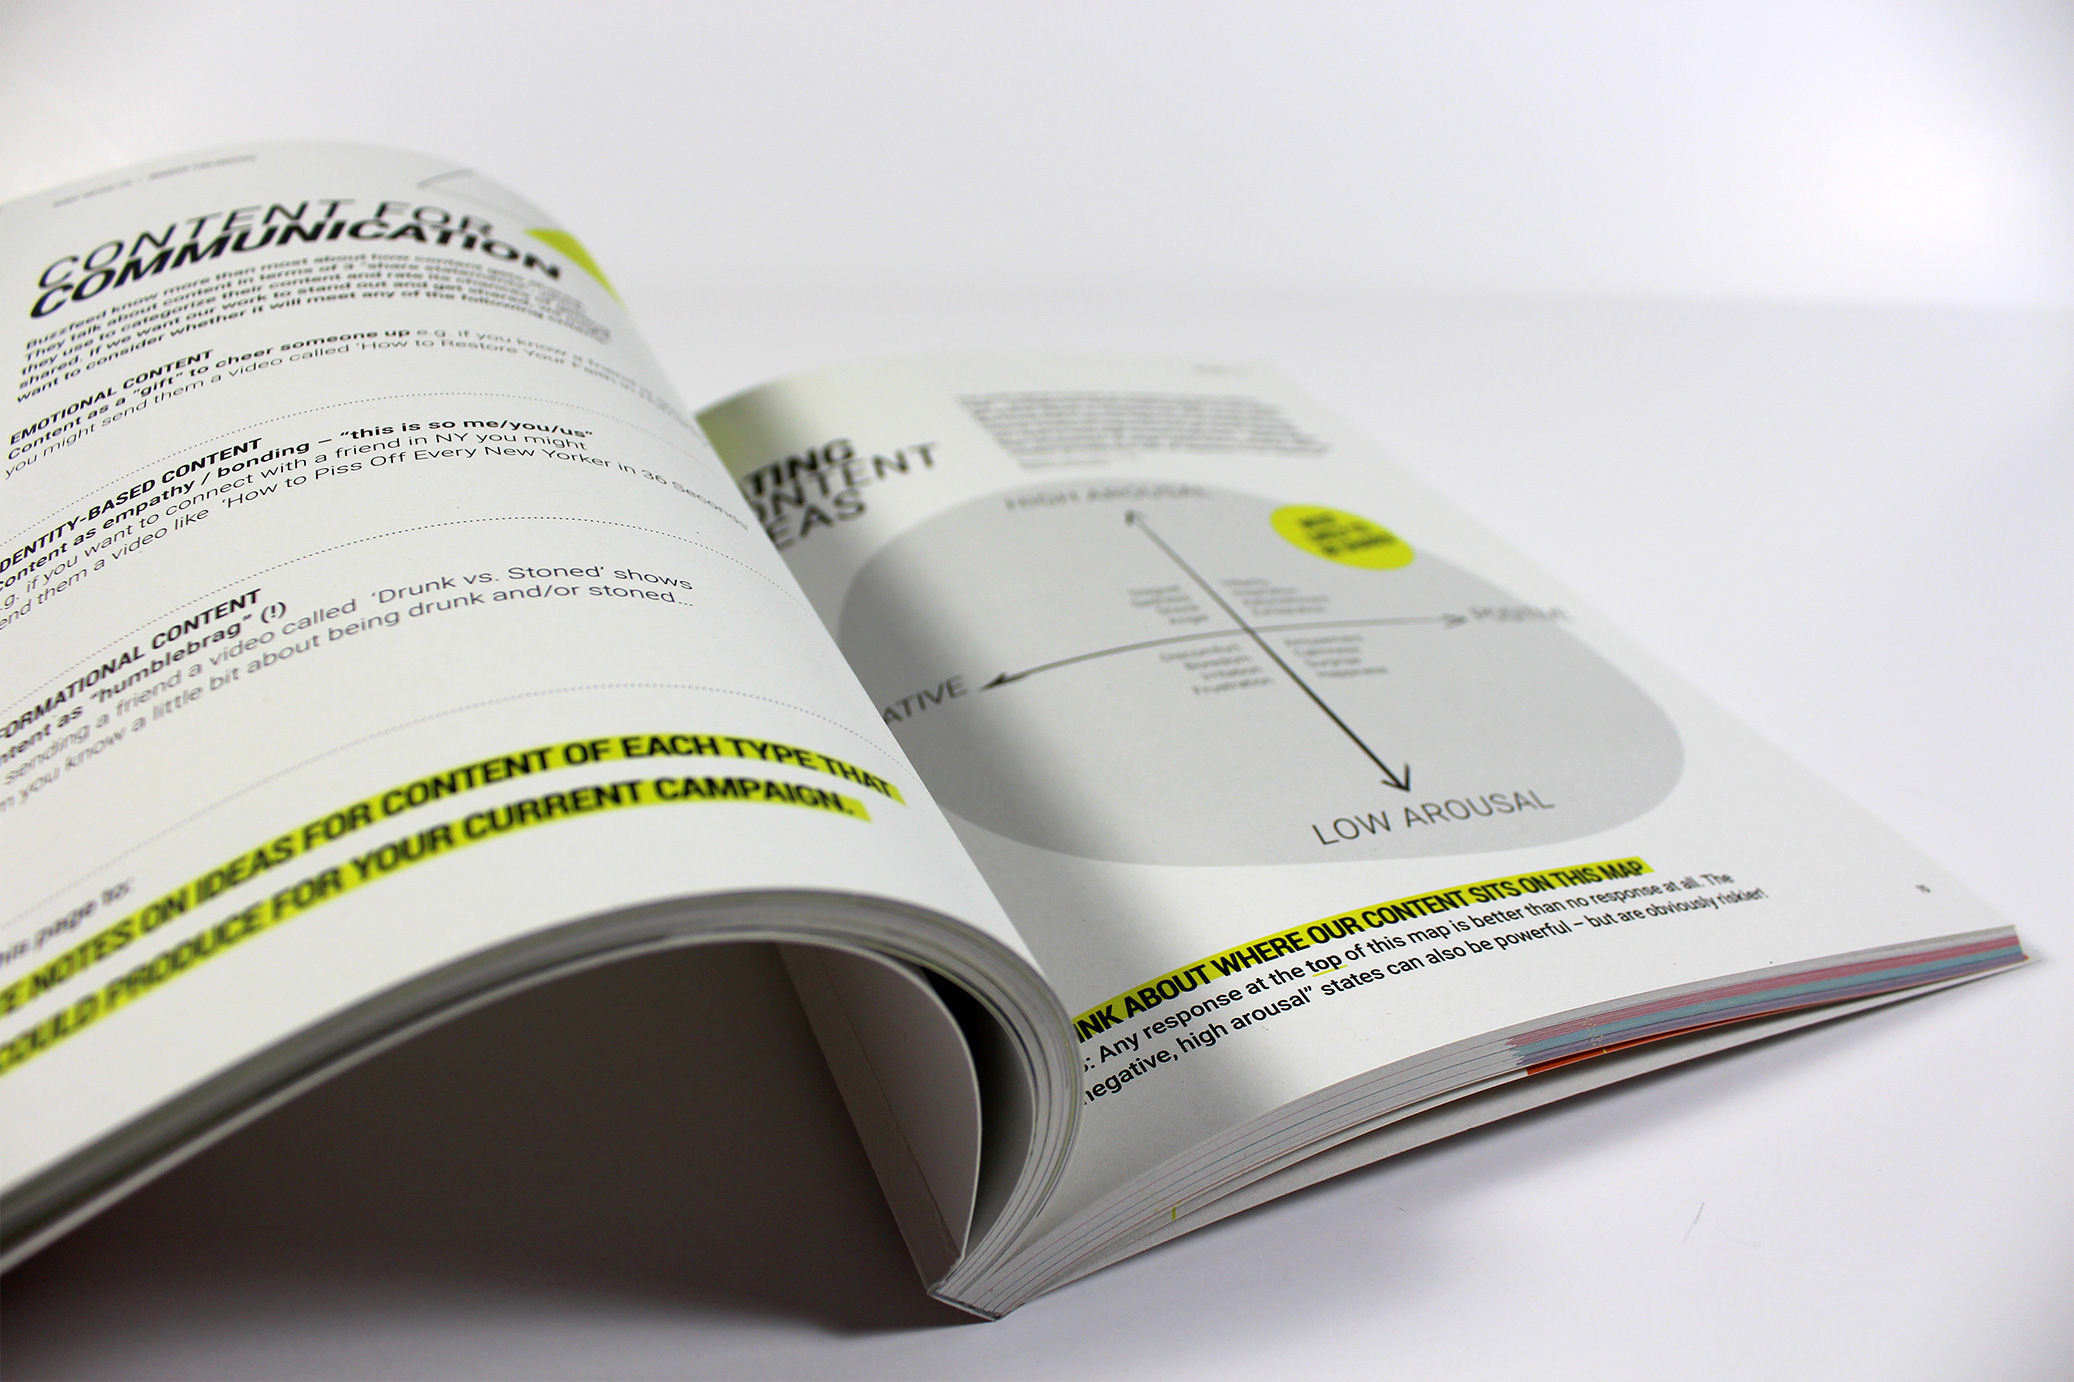 Printed catalogue for Music Industry